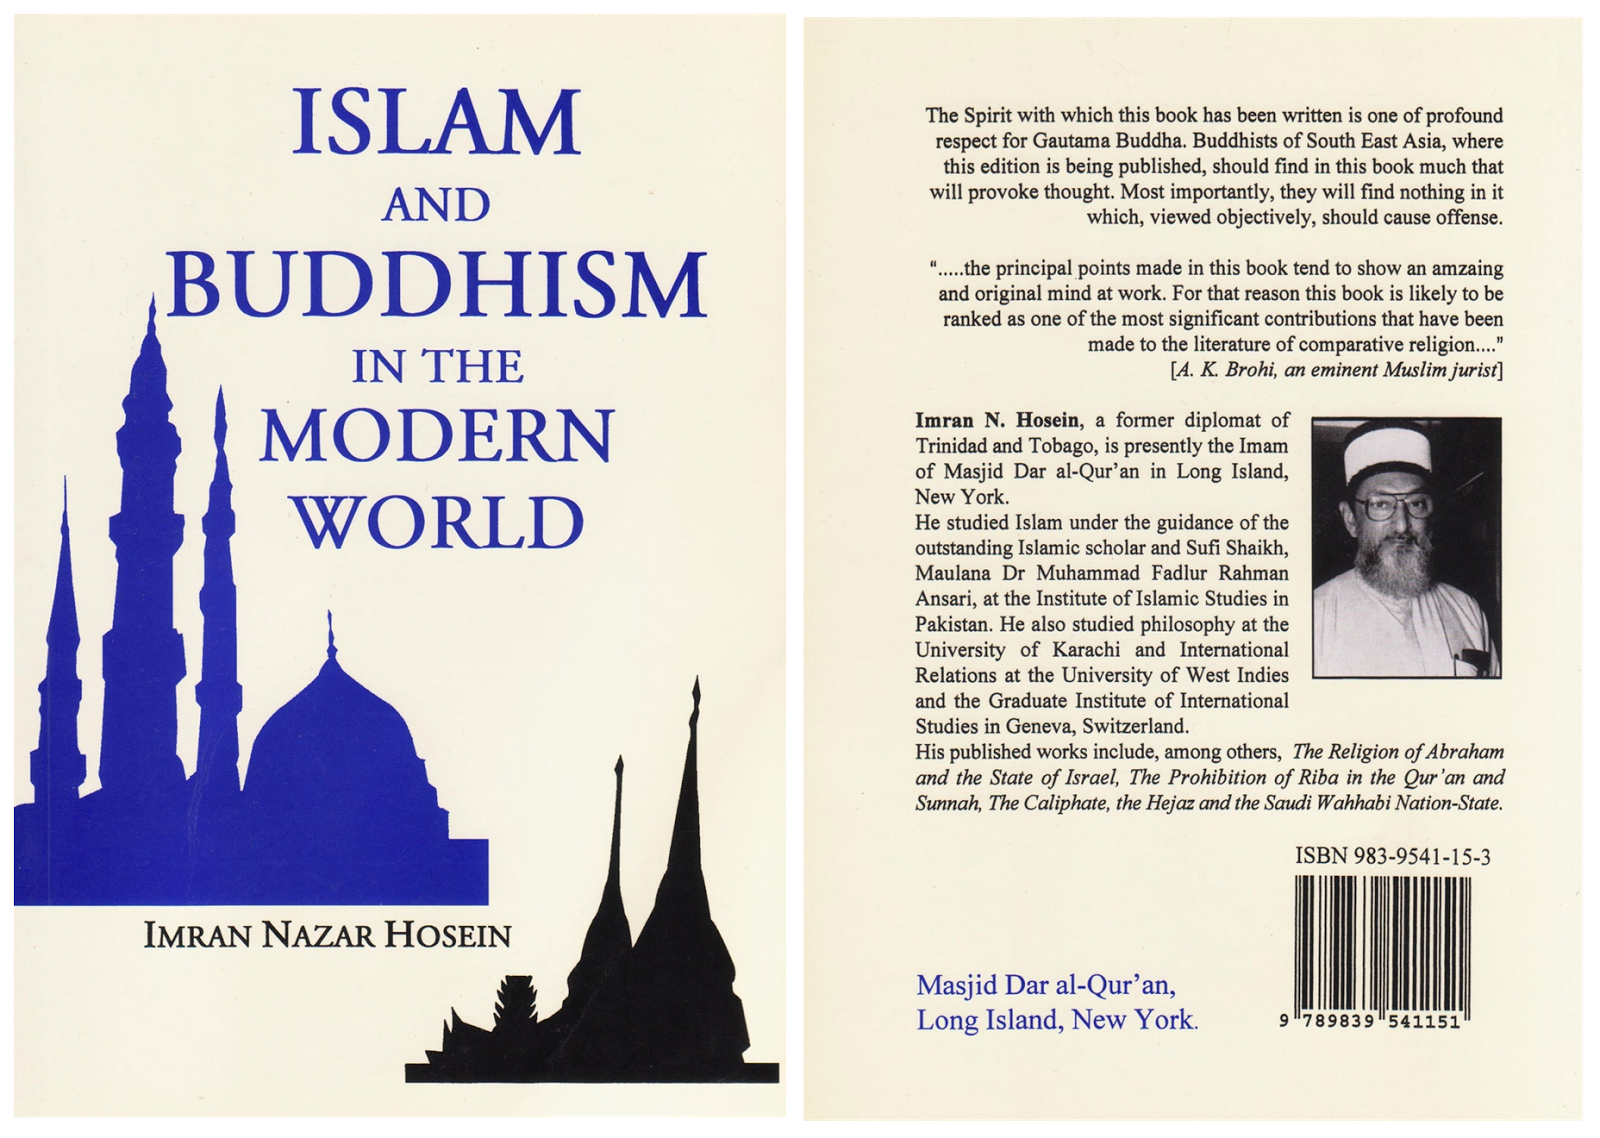 Islam and Buddhism in the Modern World